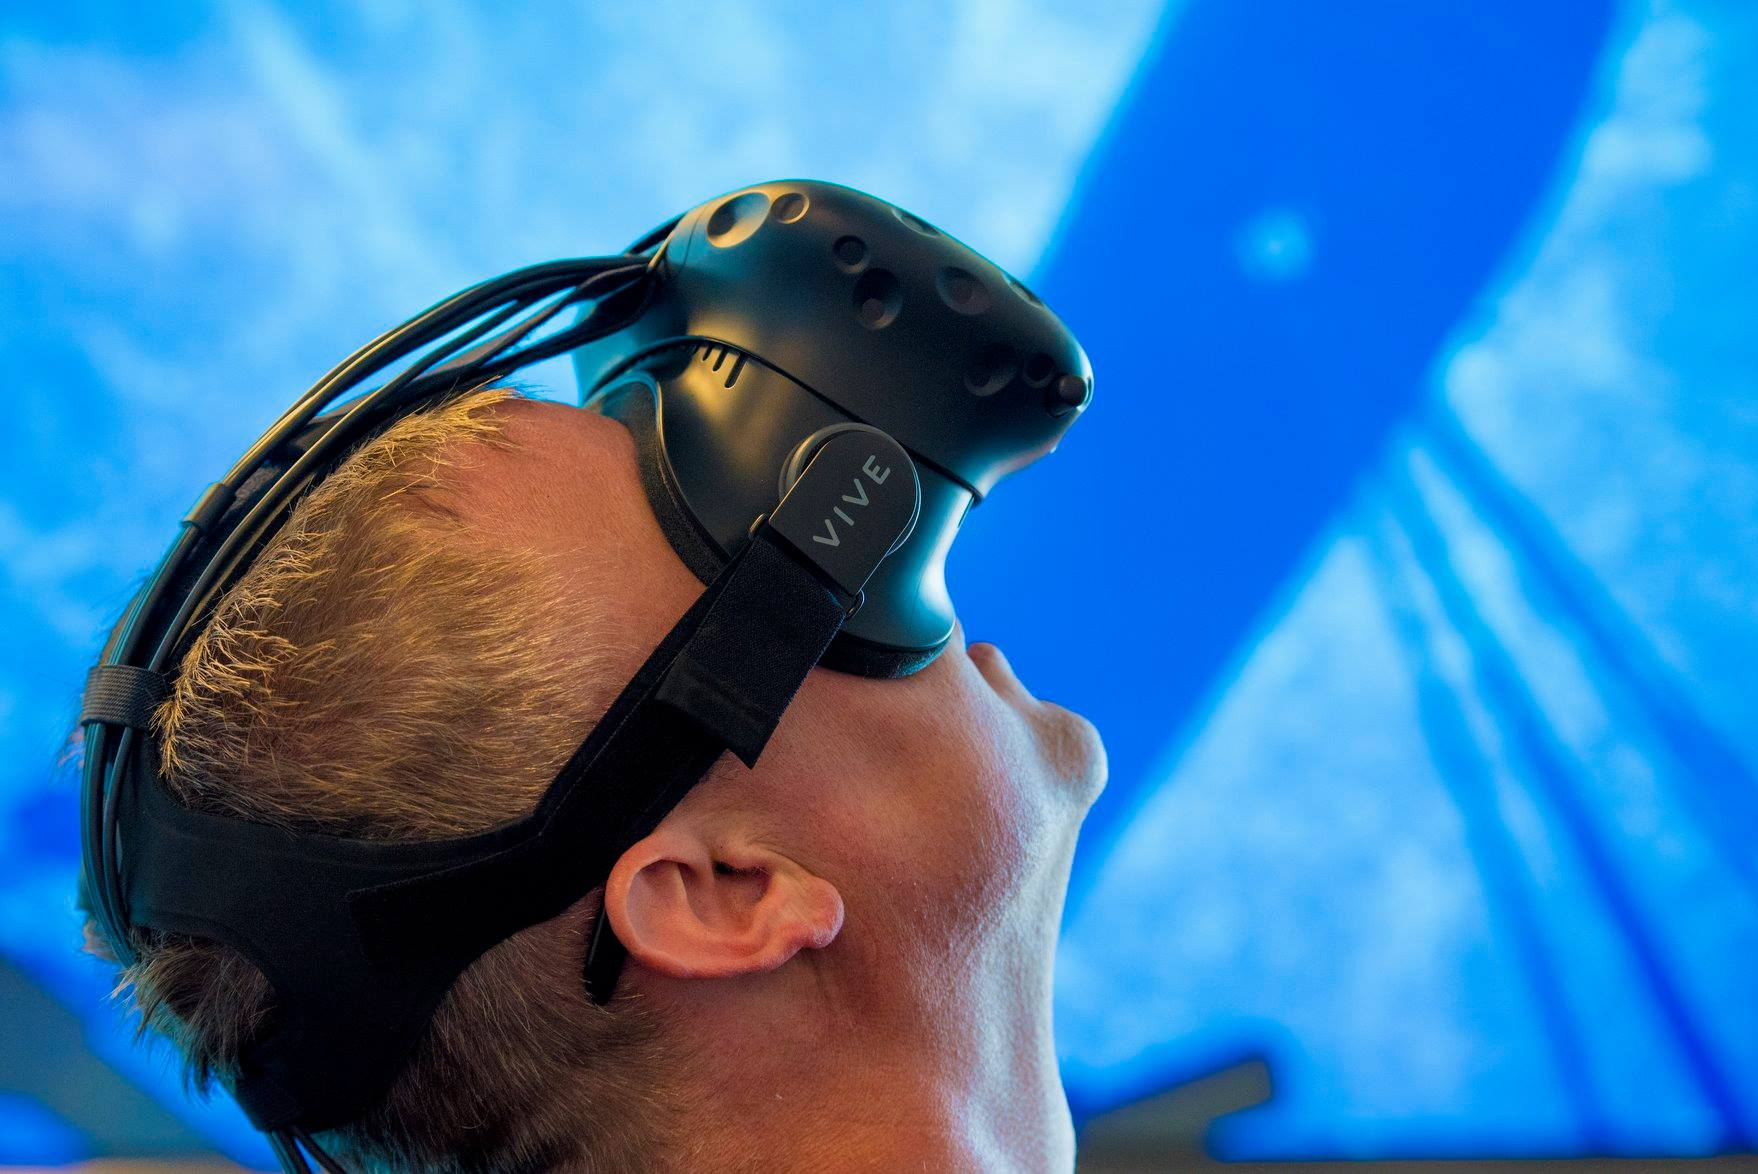 Netherlands Maritime Technology: Virtual and Augmented Reality for the Maritime Sector